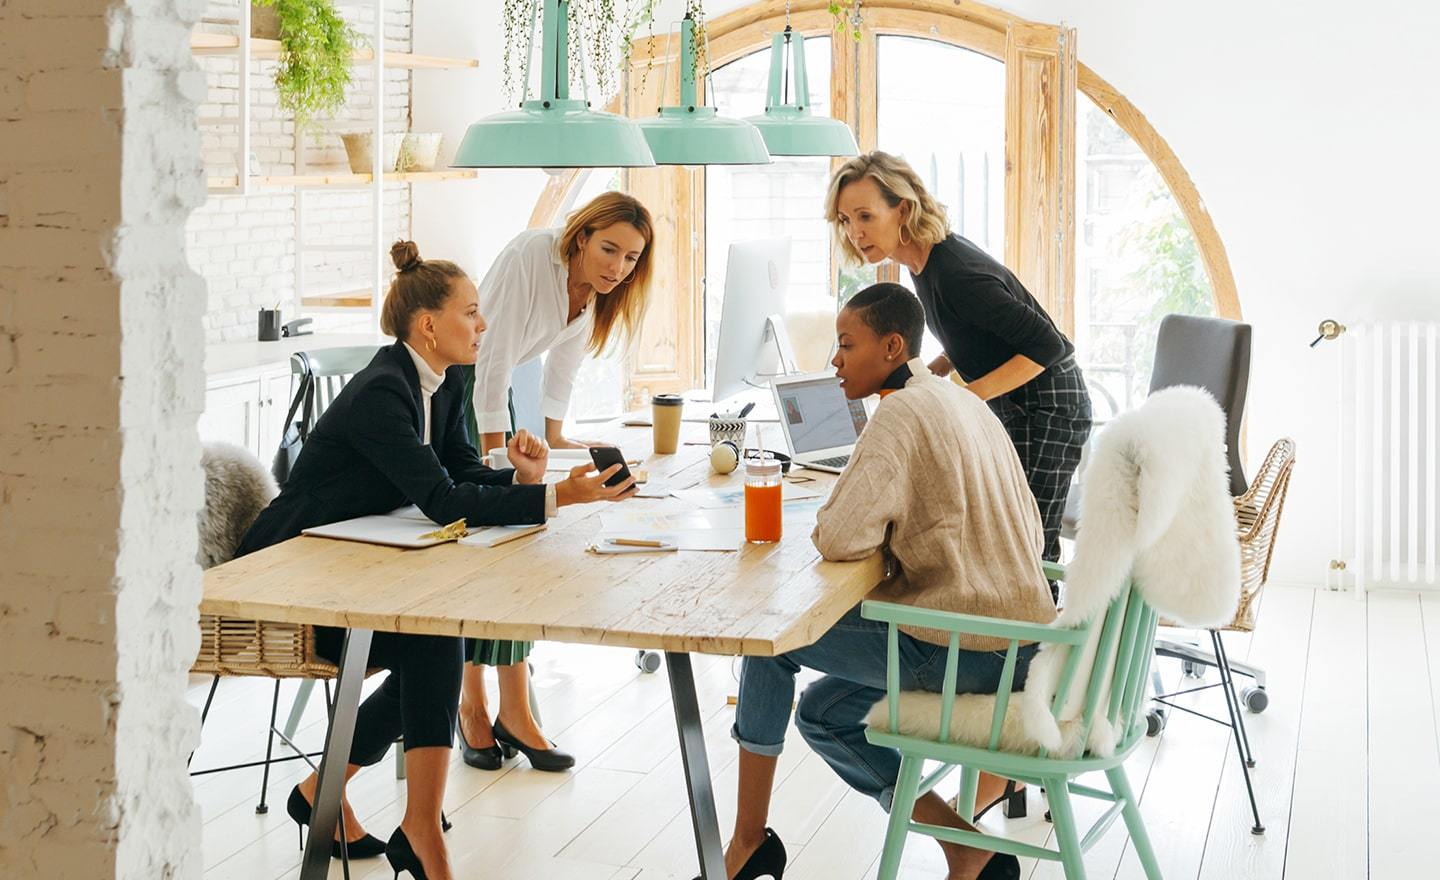 Group of female coworkers at a shared desk